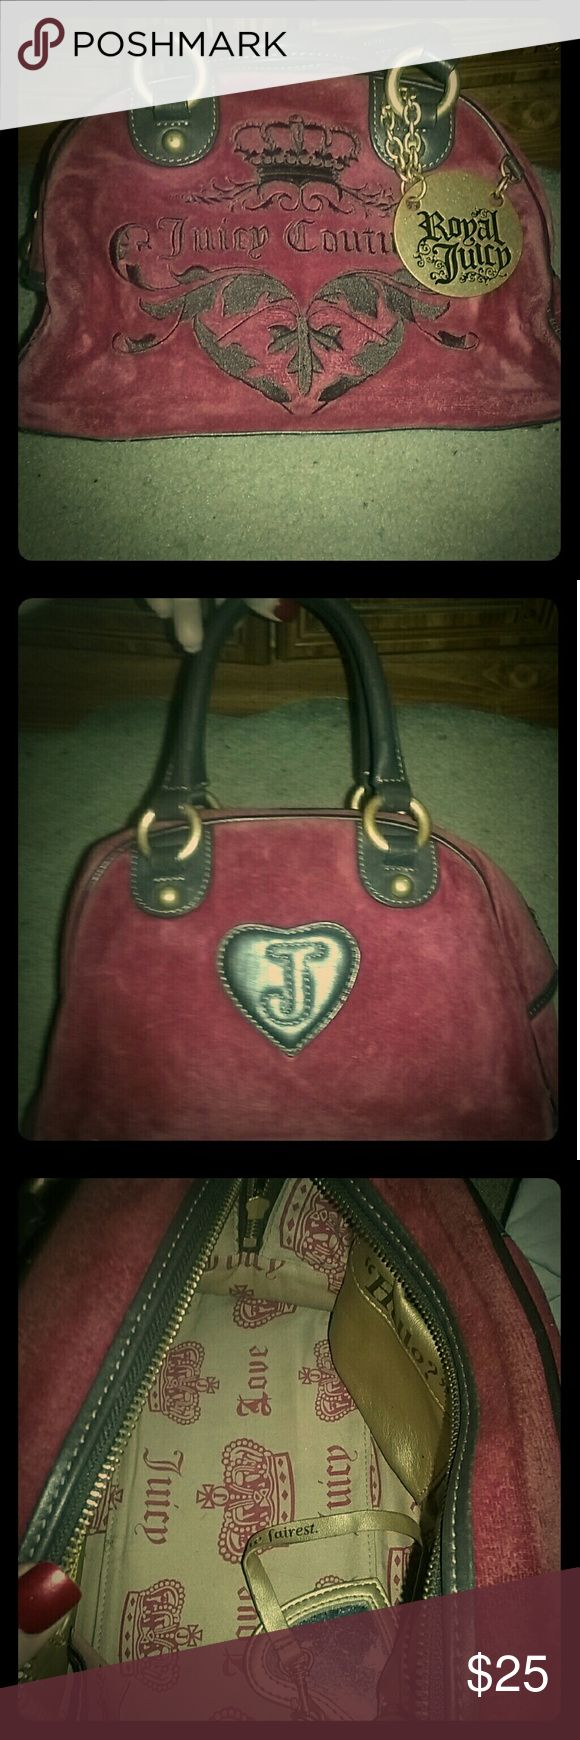 ??Authentic Juicy couture purse ? Juicy Couture Burgundy bowler bag with original gold charm & interior mirror attached.  Pre loved, but still in excellent condition. Juicy Couture Bags Mini Bags